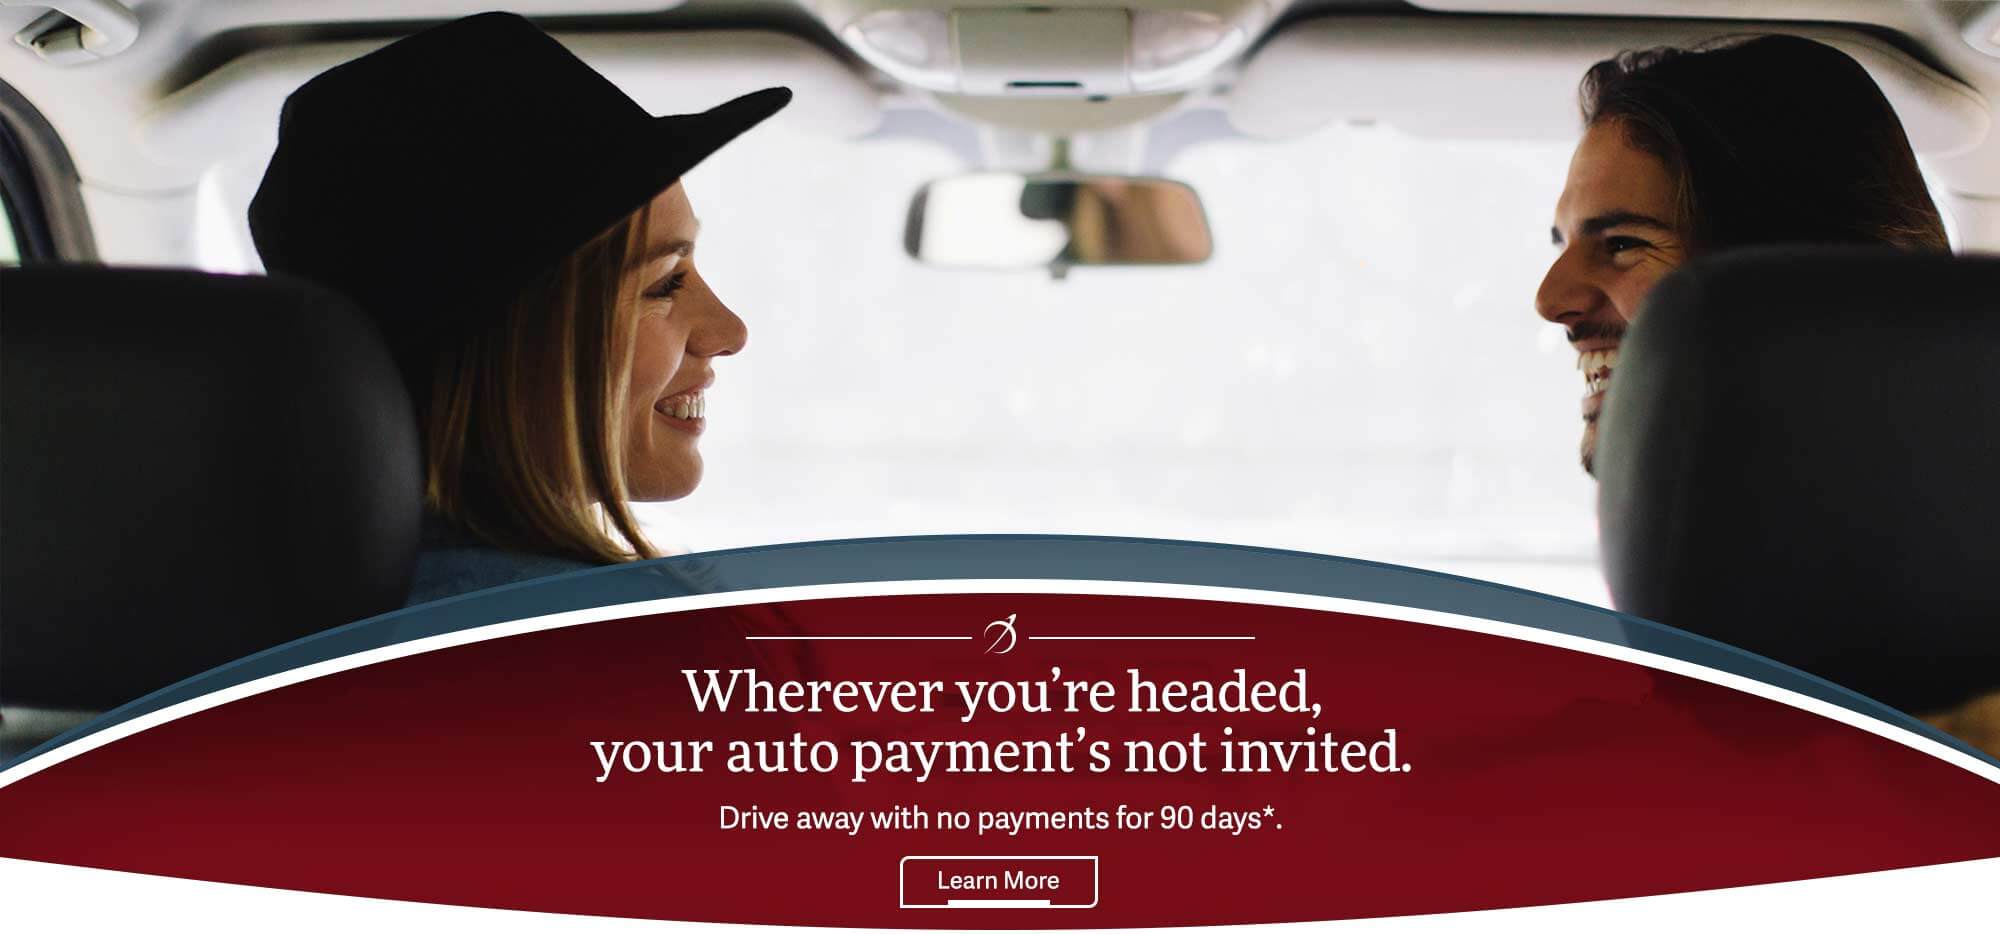 Wherever your are headed, your auto payment's not invited.